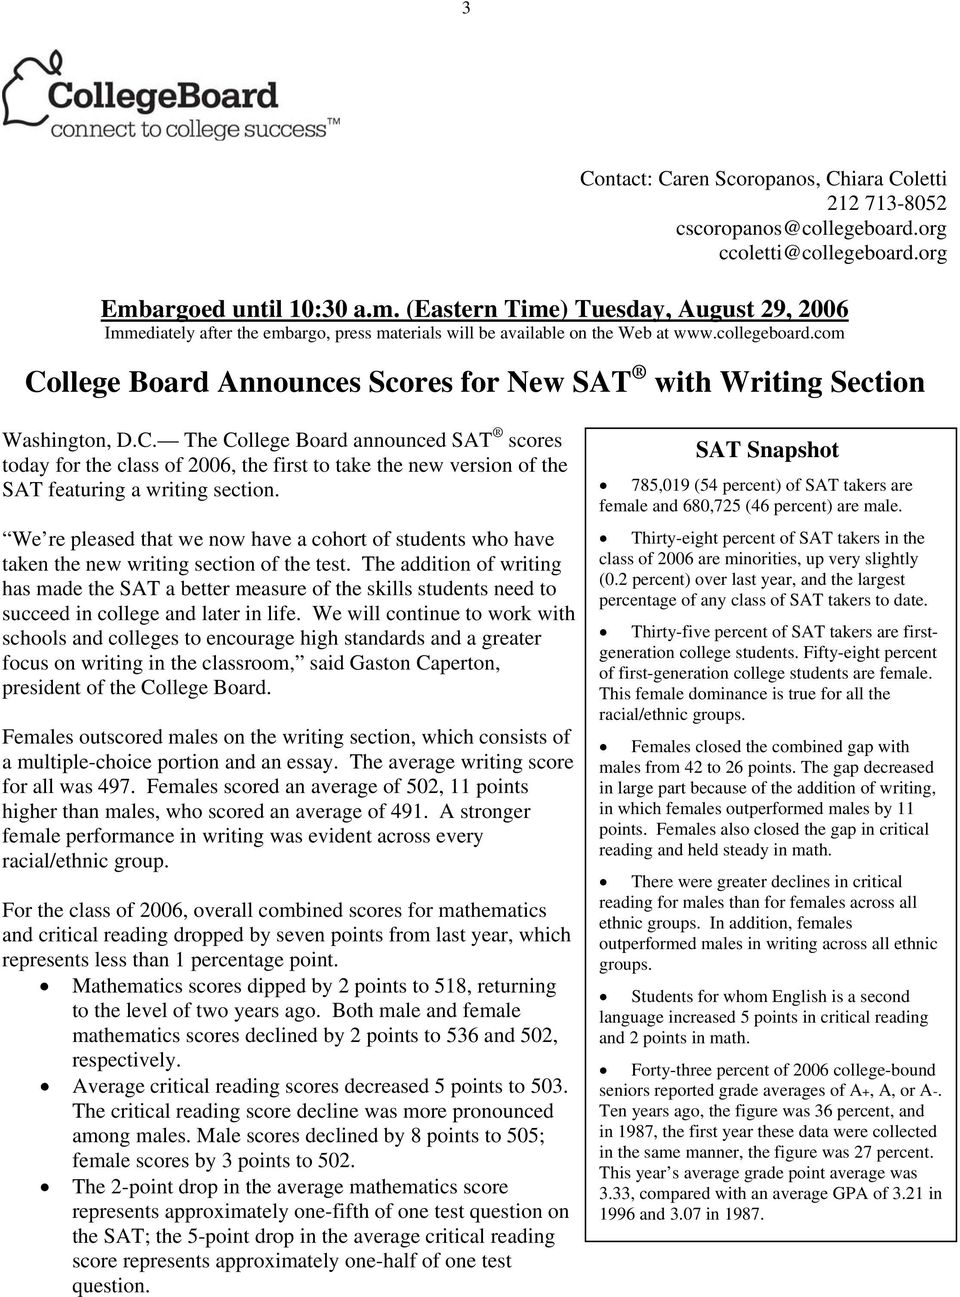 com College Board Announces Scores for New SAT with Writing Section Washington, D.C. The College Board announced SAT scores today for the class of 2006, the first to take the new version of the SAT featuring a writing section.